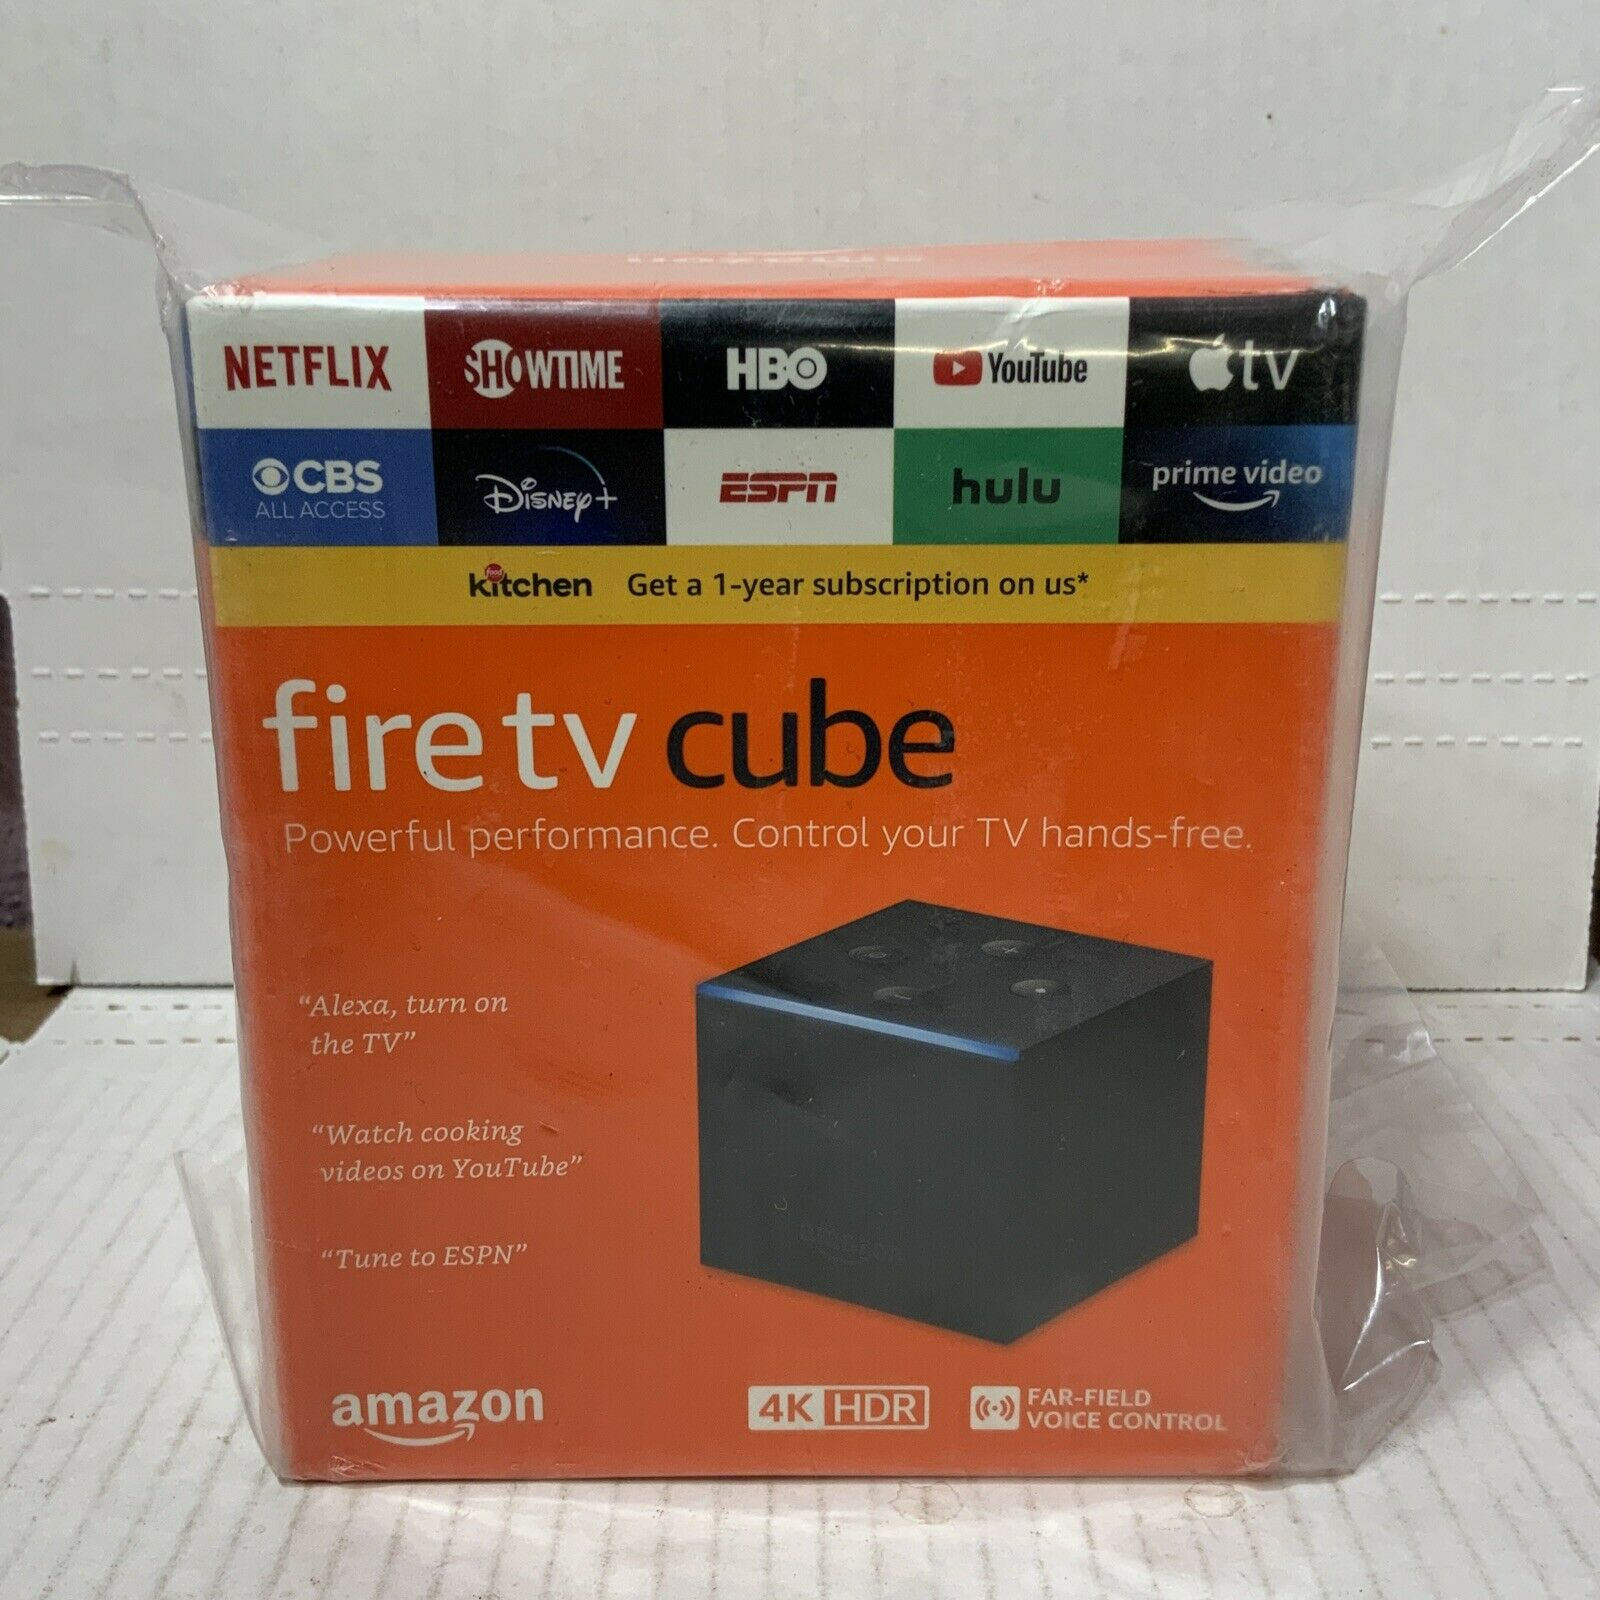 📀 Amazon Fire TV Cube: 4K HDR 2nd Gen Streaming Media Player 2nd amazon fire gen hdr media player streaming